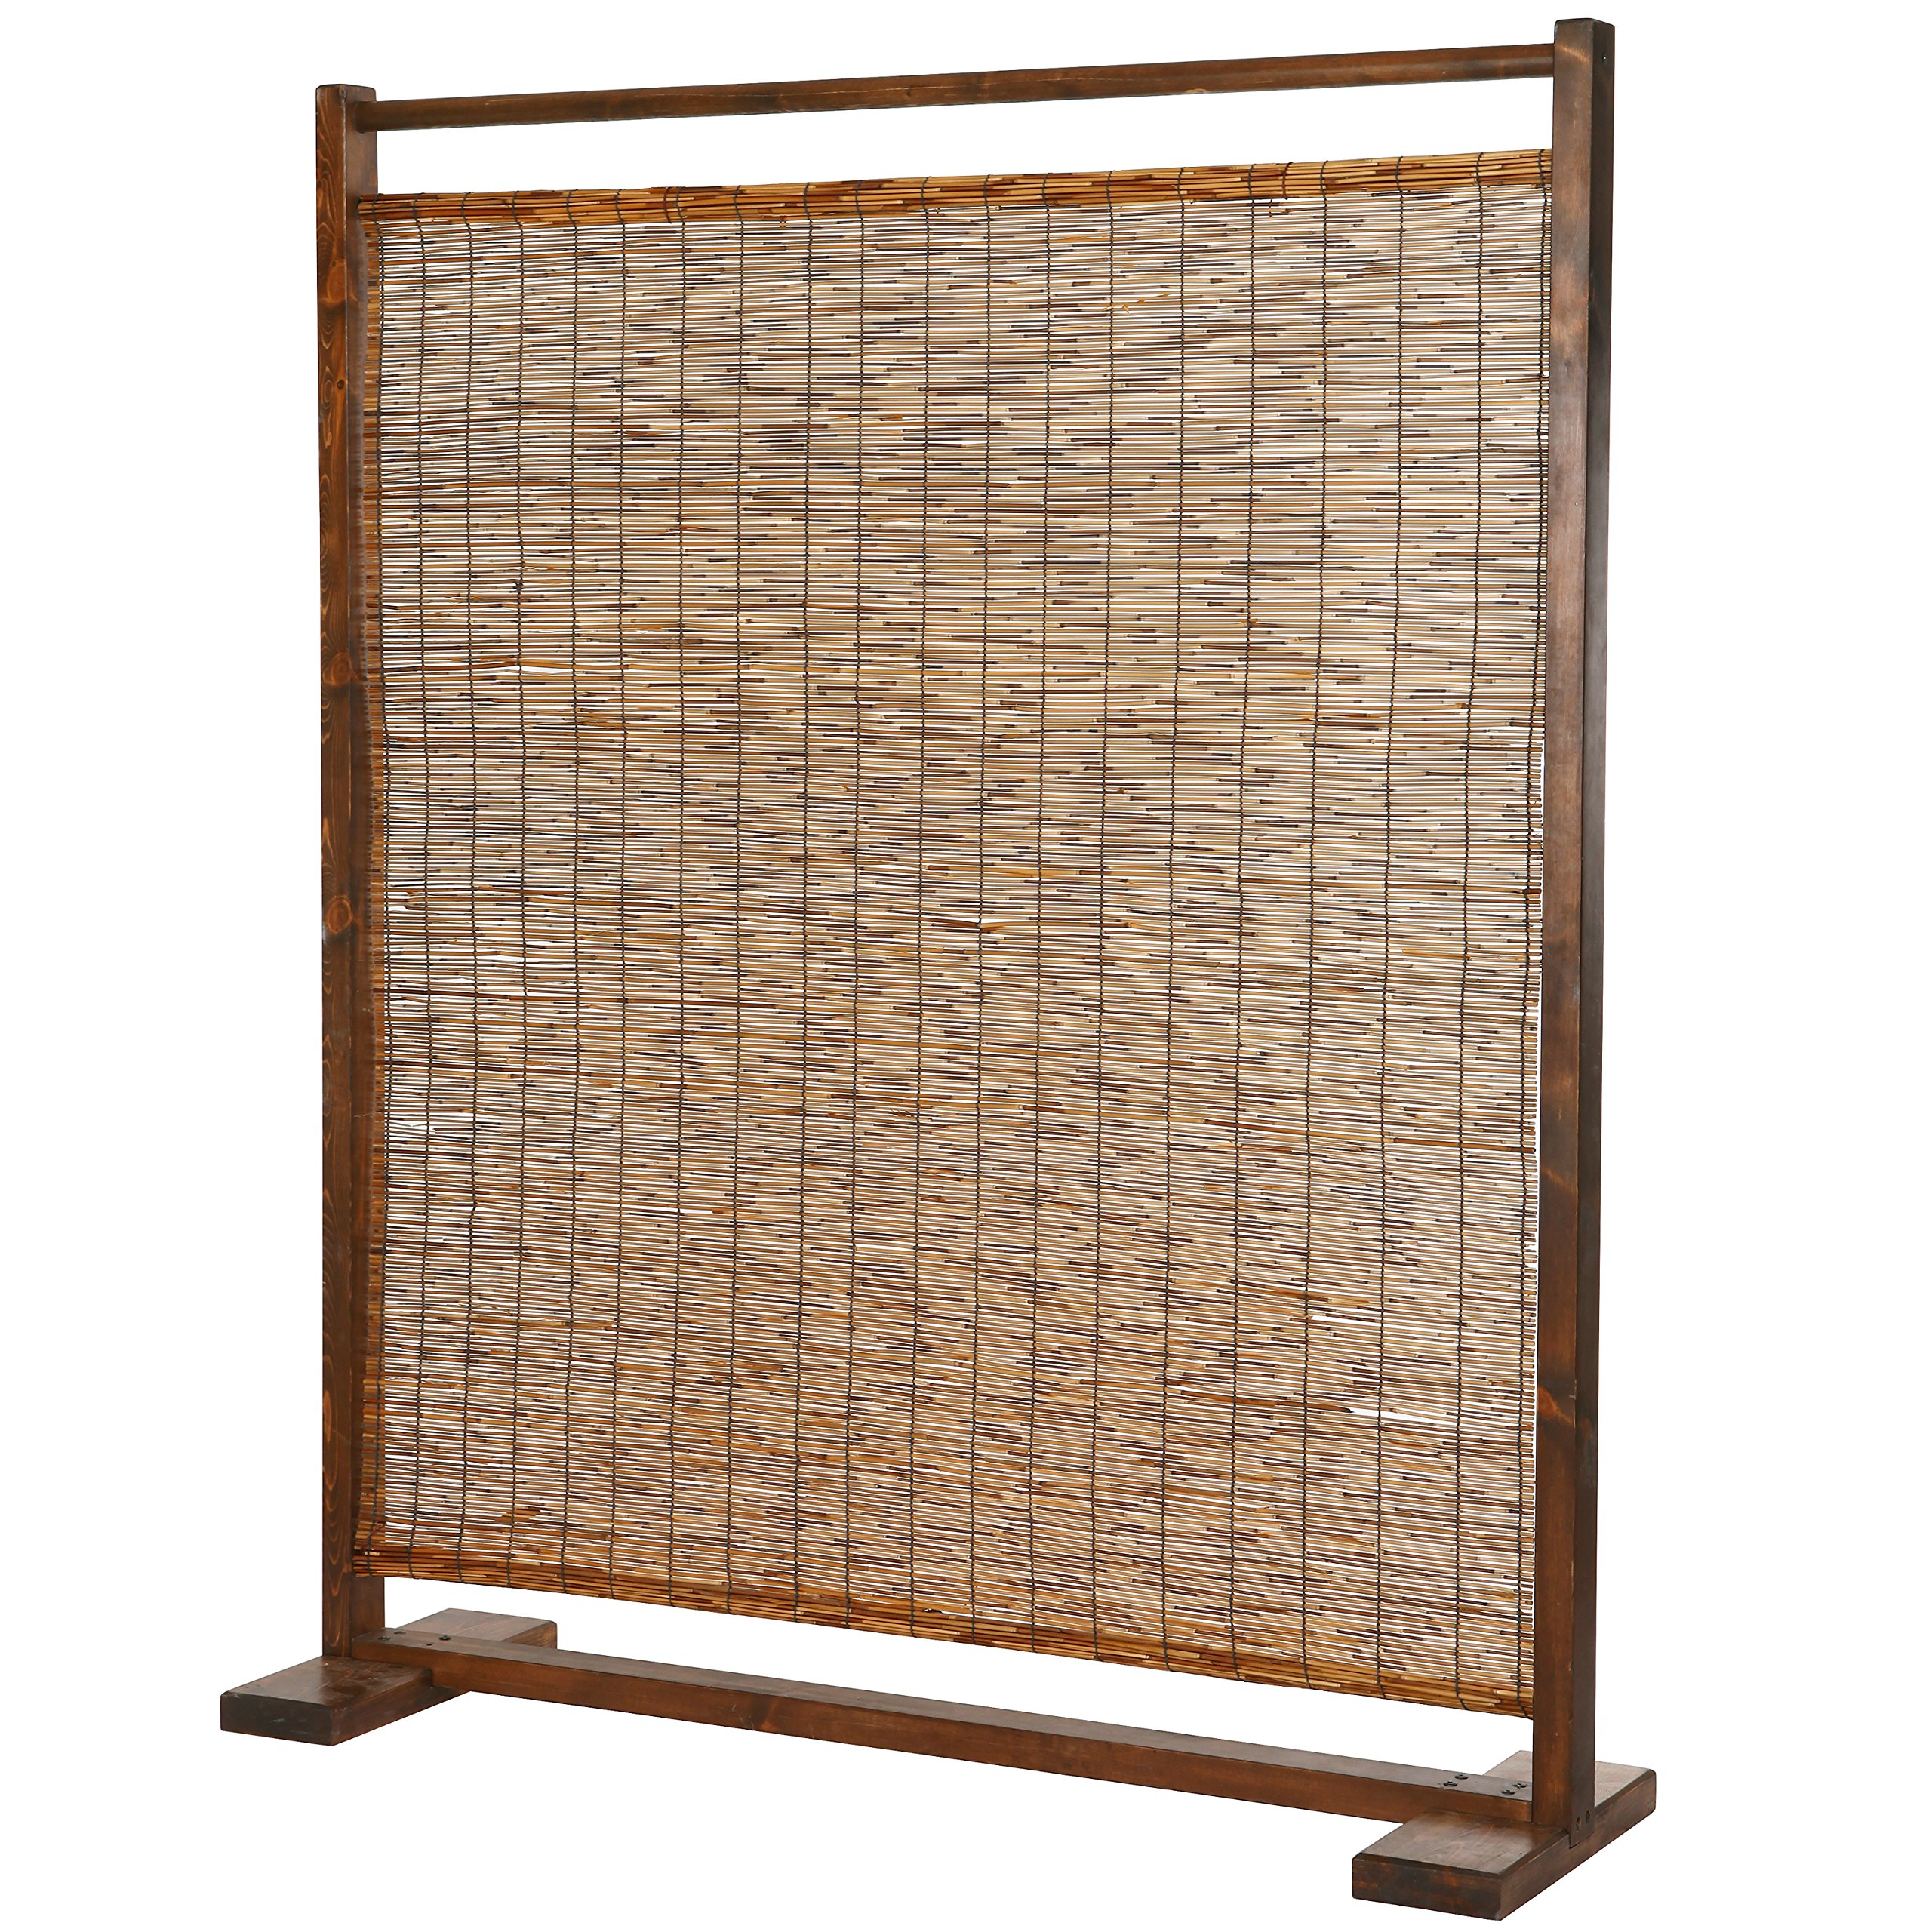 MyGift Rustic Style Dark Brown Wood and Reed Single Panel Privacy Screen Room Divider by MyGift